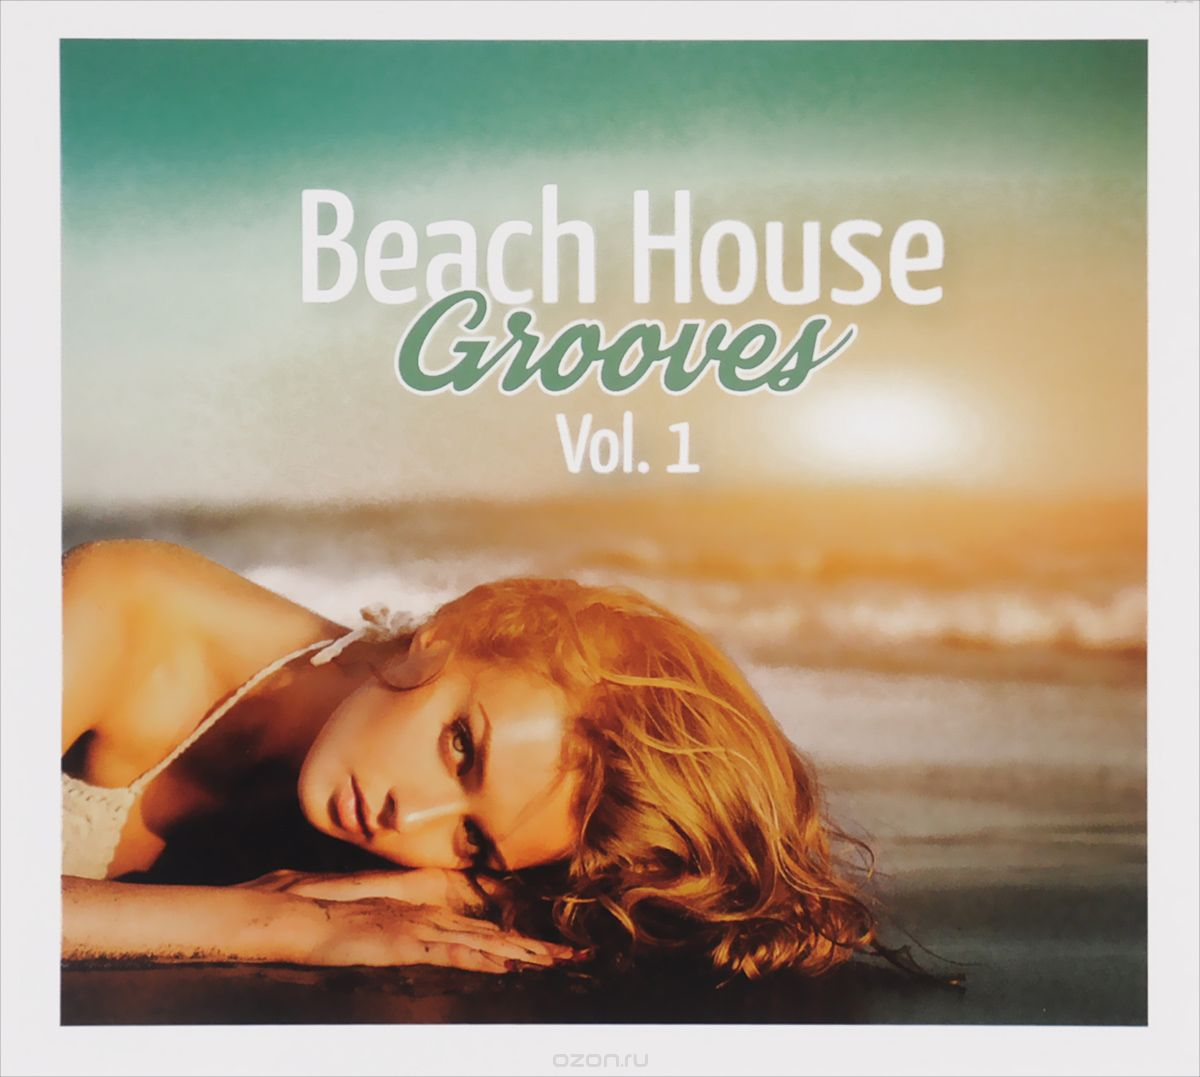 Beach House Grooves Vol. 1 (2 CD)